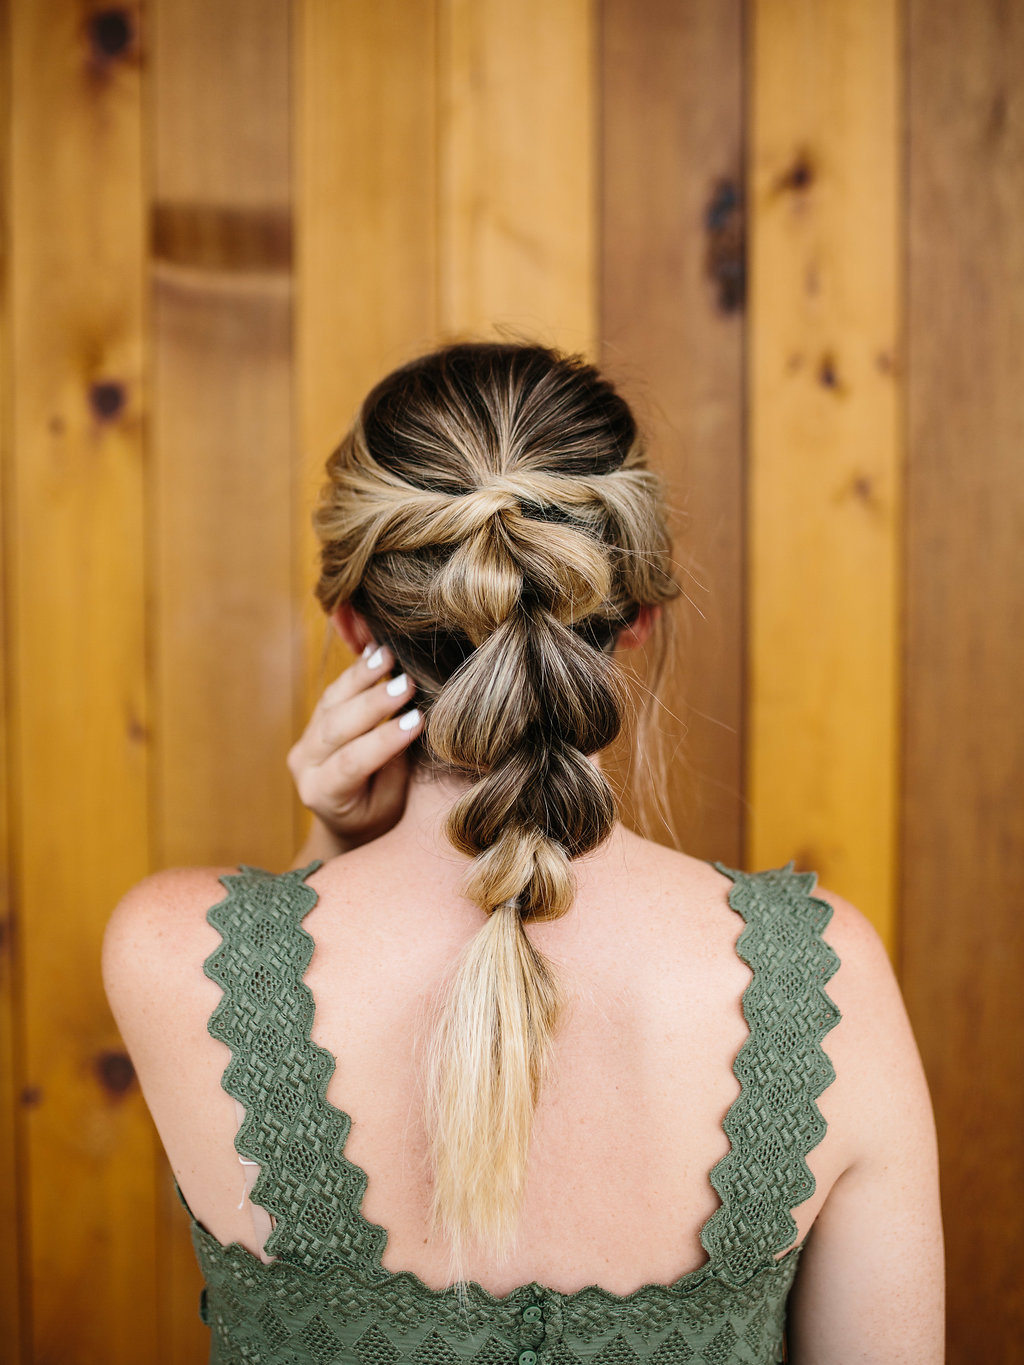 Wonder Woman Braid Tutorial – The Effortless Chic Intended For Popular Thick And Luscious Braid Hairstyles (View 8 of 20)